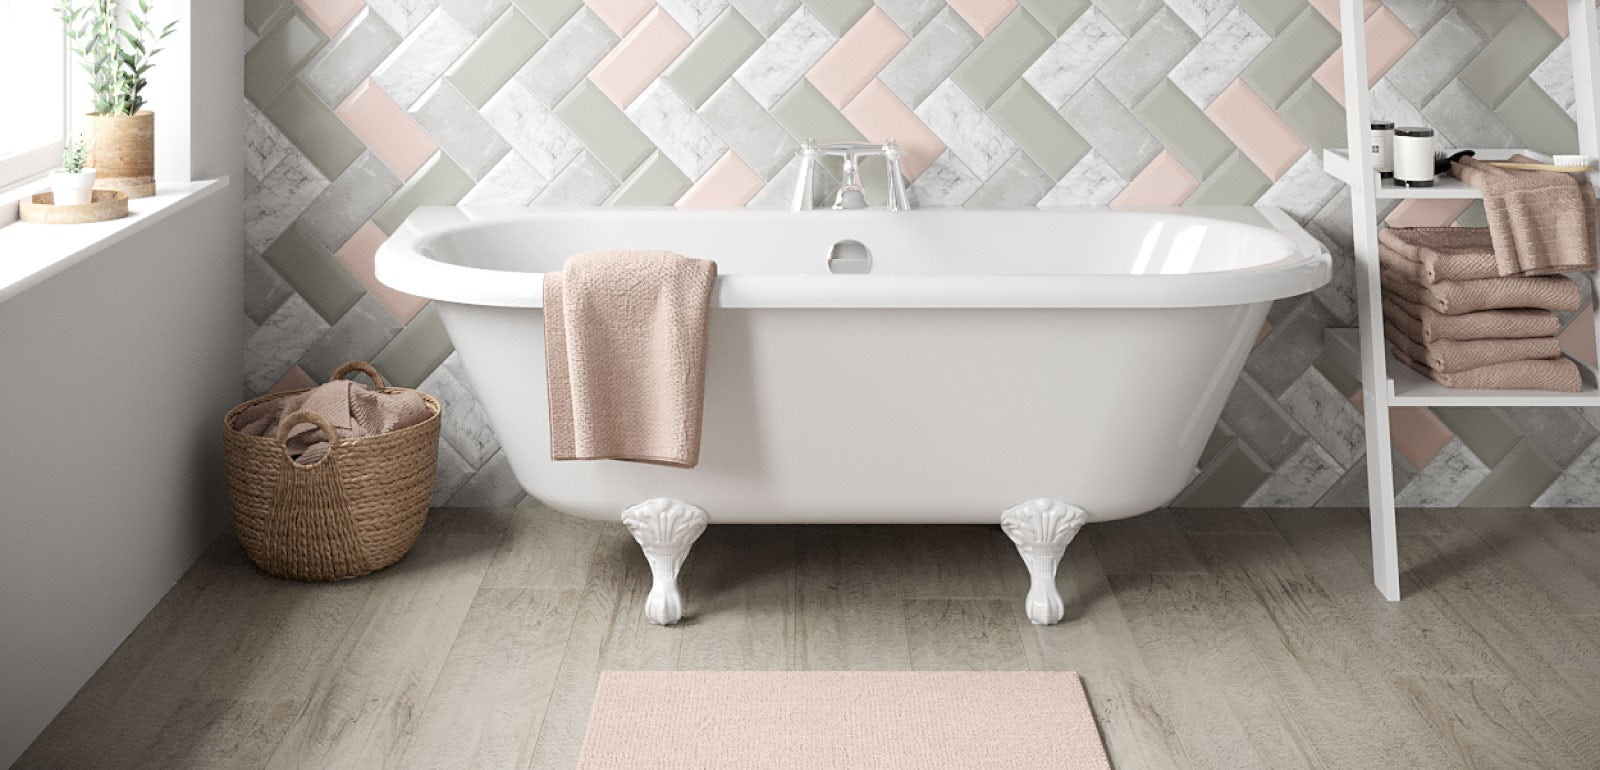 5 exciting and unusual ways to use tiles in your bathroom